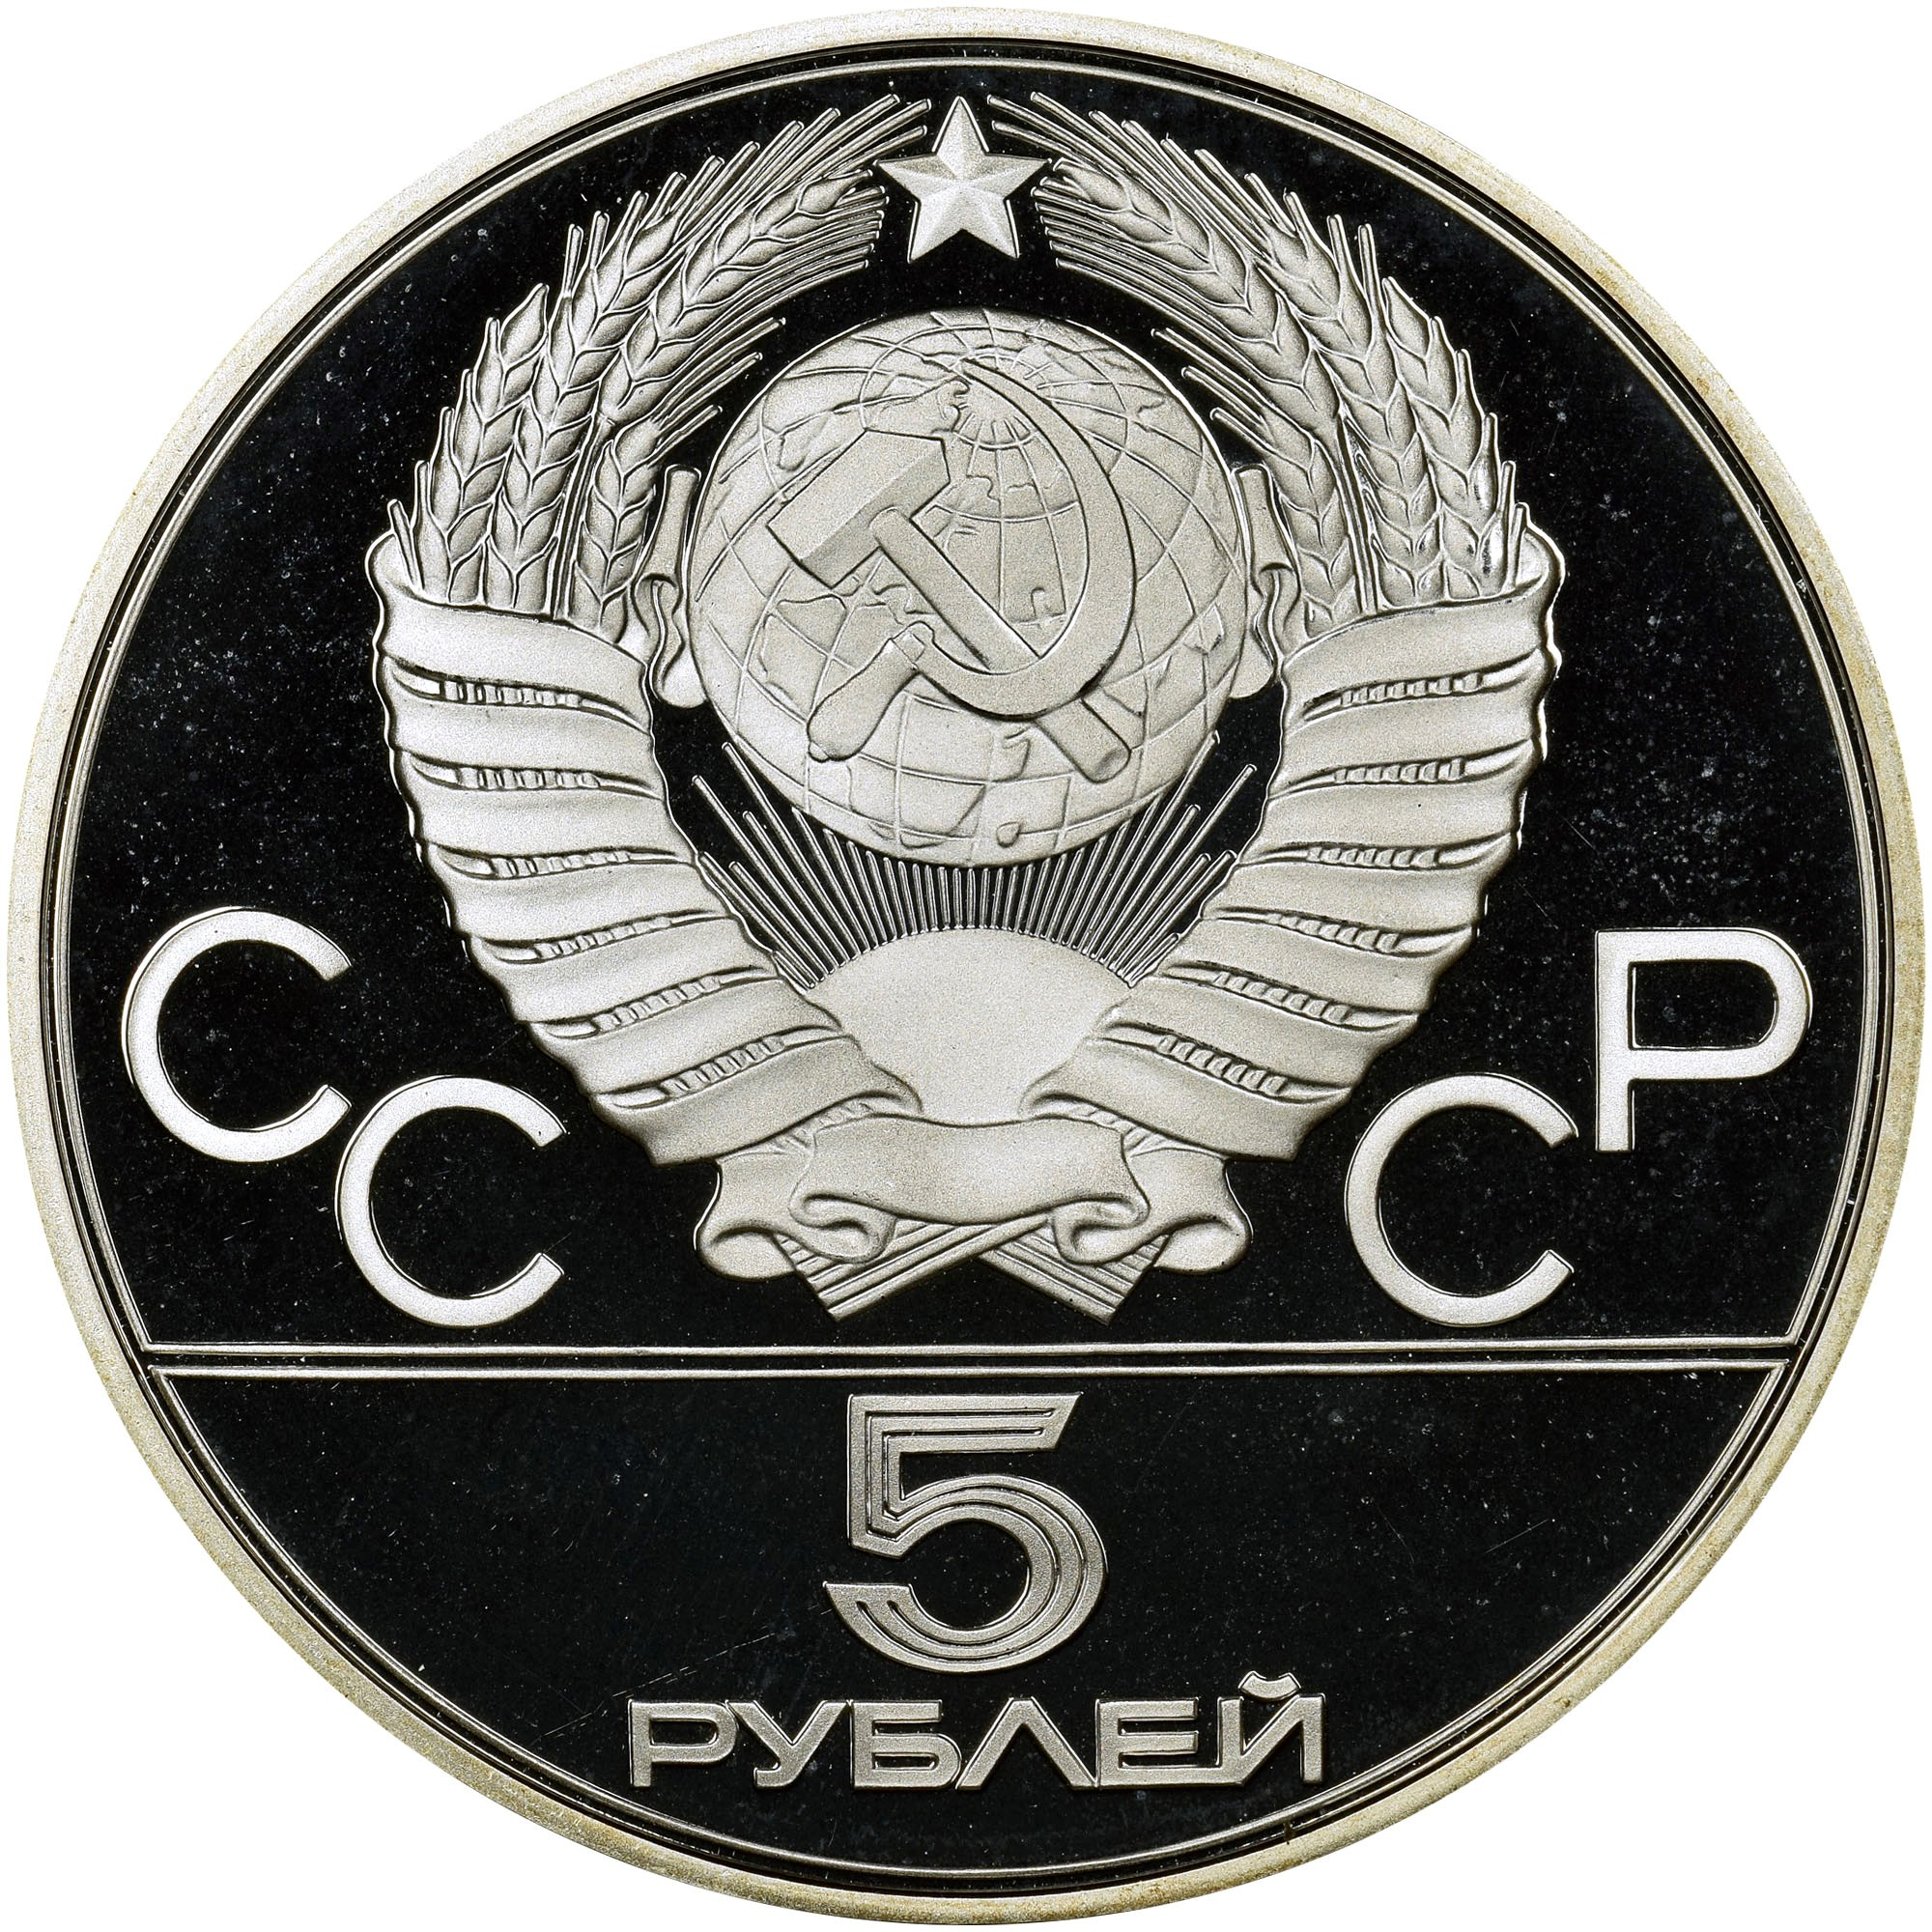 5 ROUBLES 1980 MOSCOW OLYMPICS SILVER PROOF COIN USSR CCCP Russia